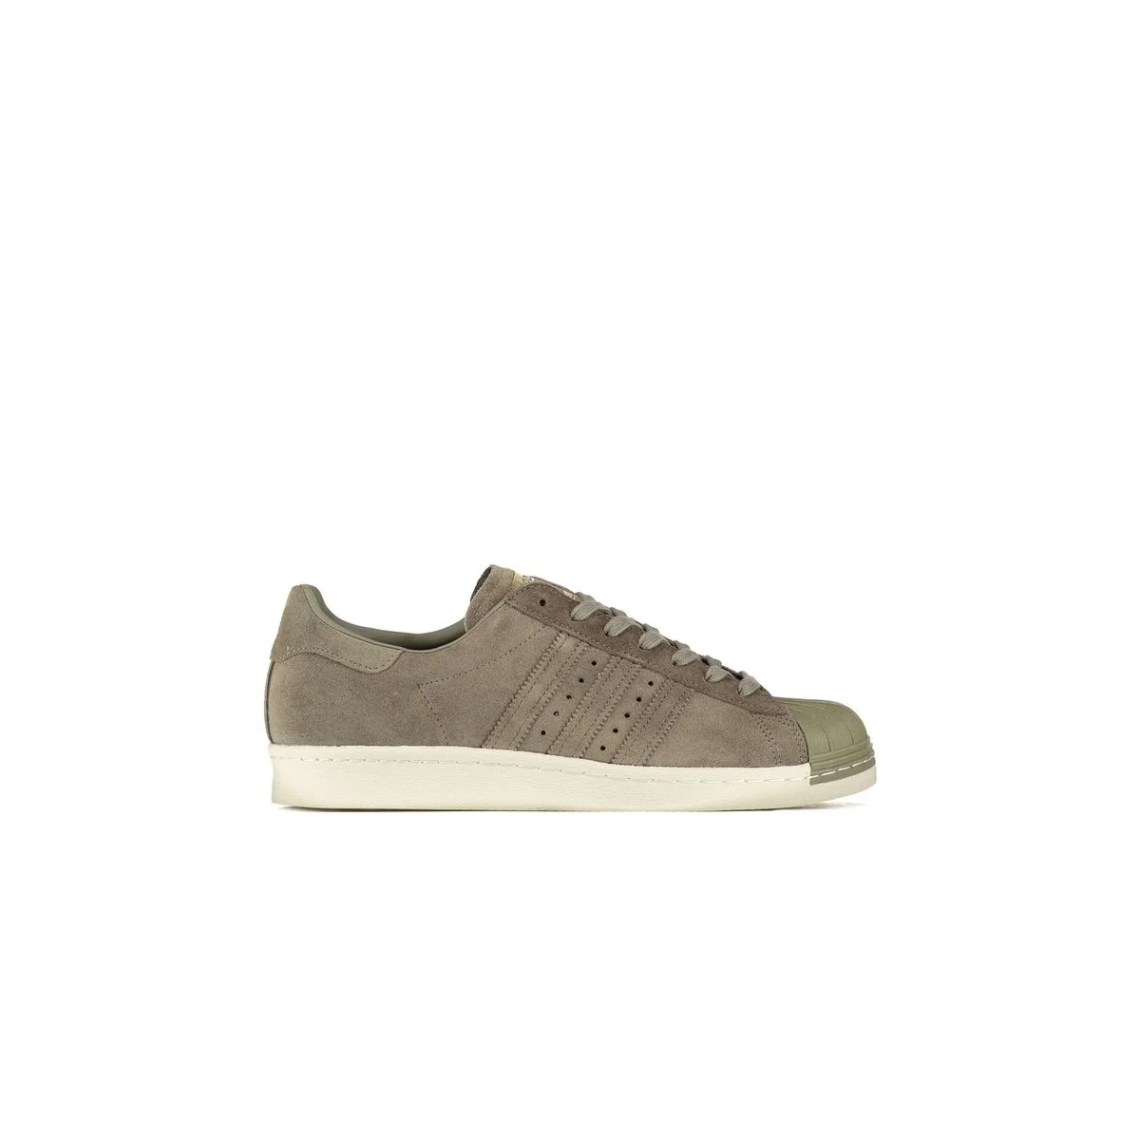 Chaussures Adidas Femme 3